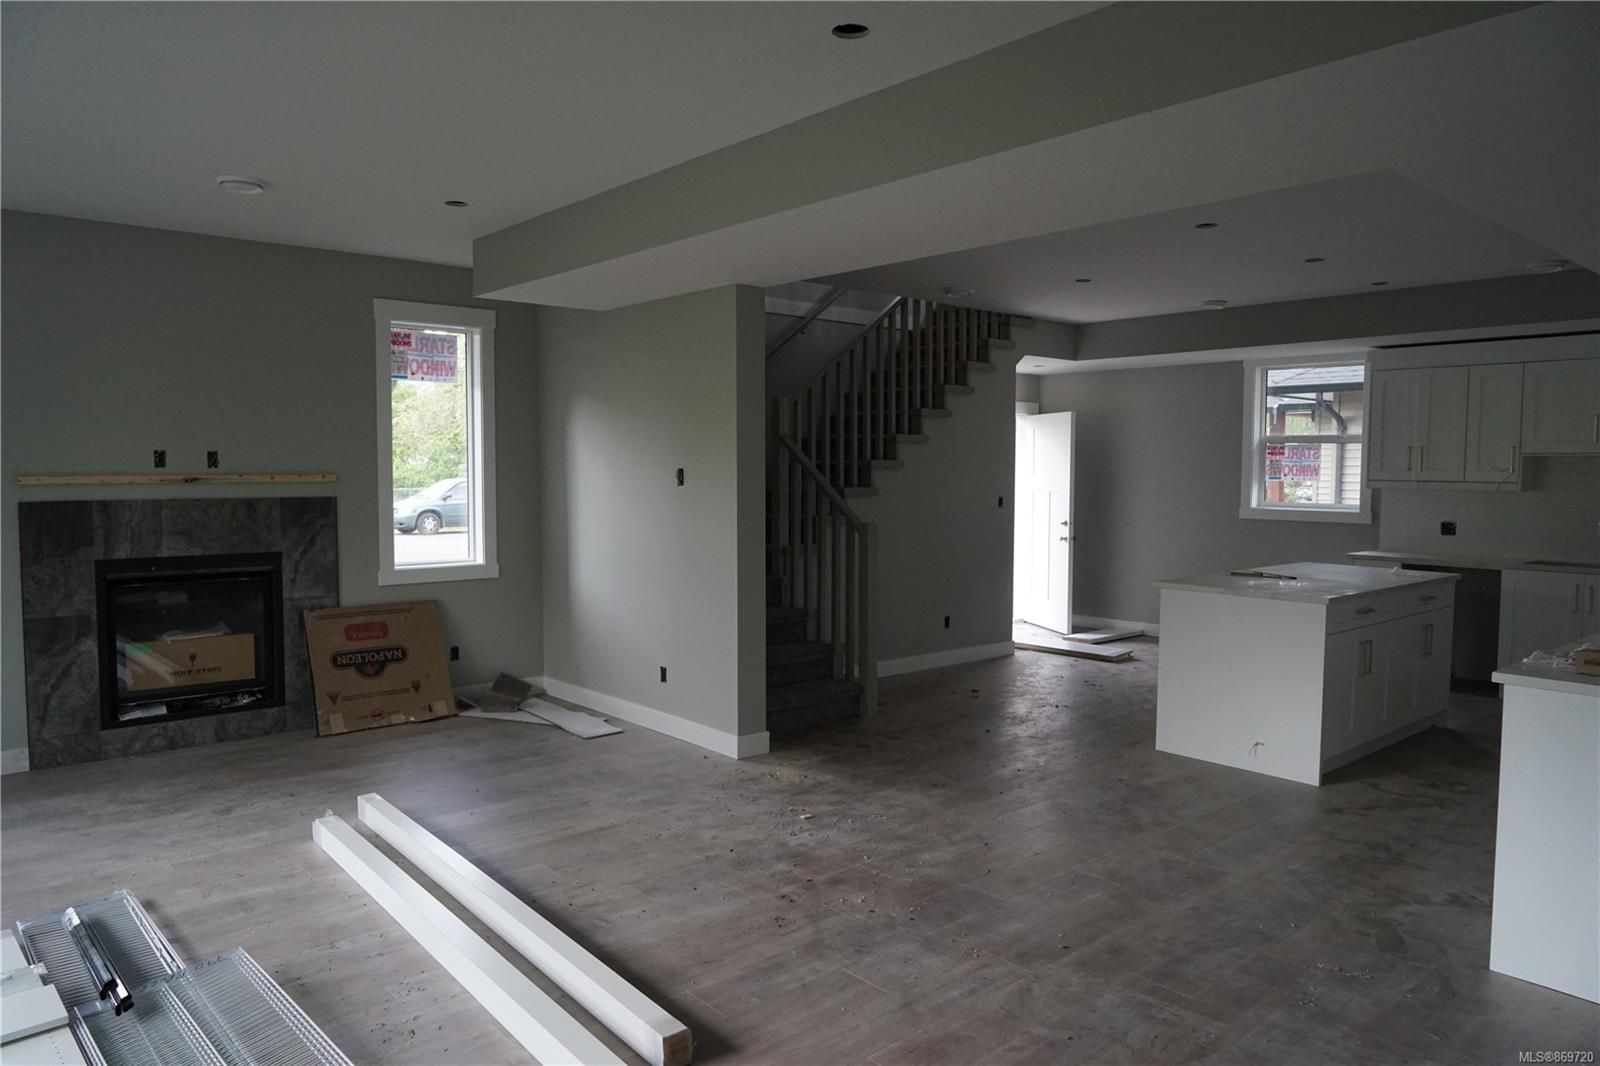 Photo 18: Photos: 770 Bruce Ave in : Na South Nanaimo House for sale (Nanaimo)  : MLS®# 869720